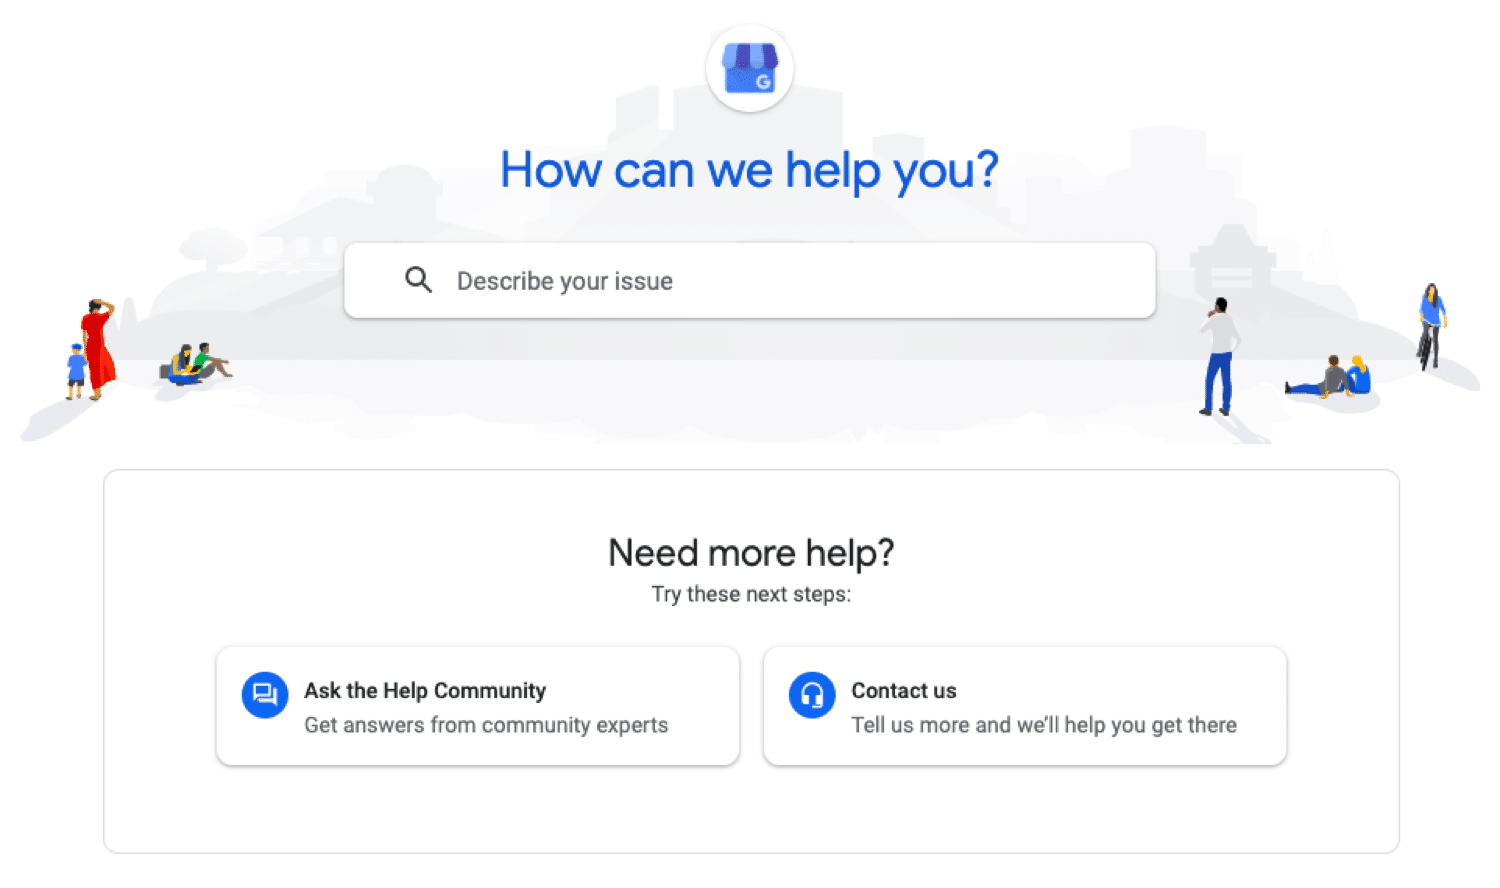 Google My Business support portal for accessing the knowledge base, community and direct support